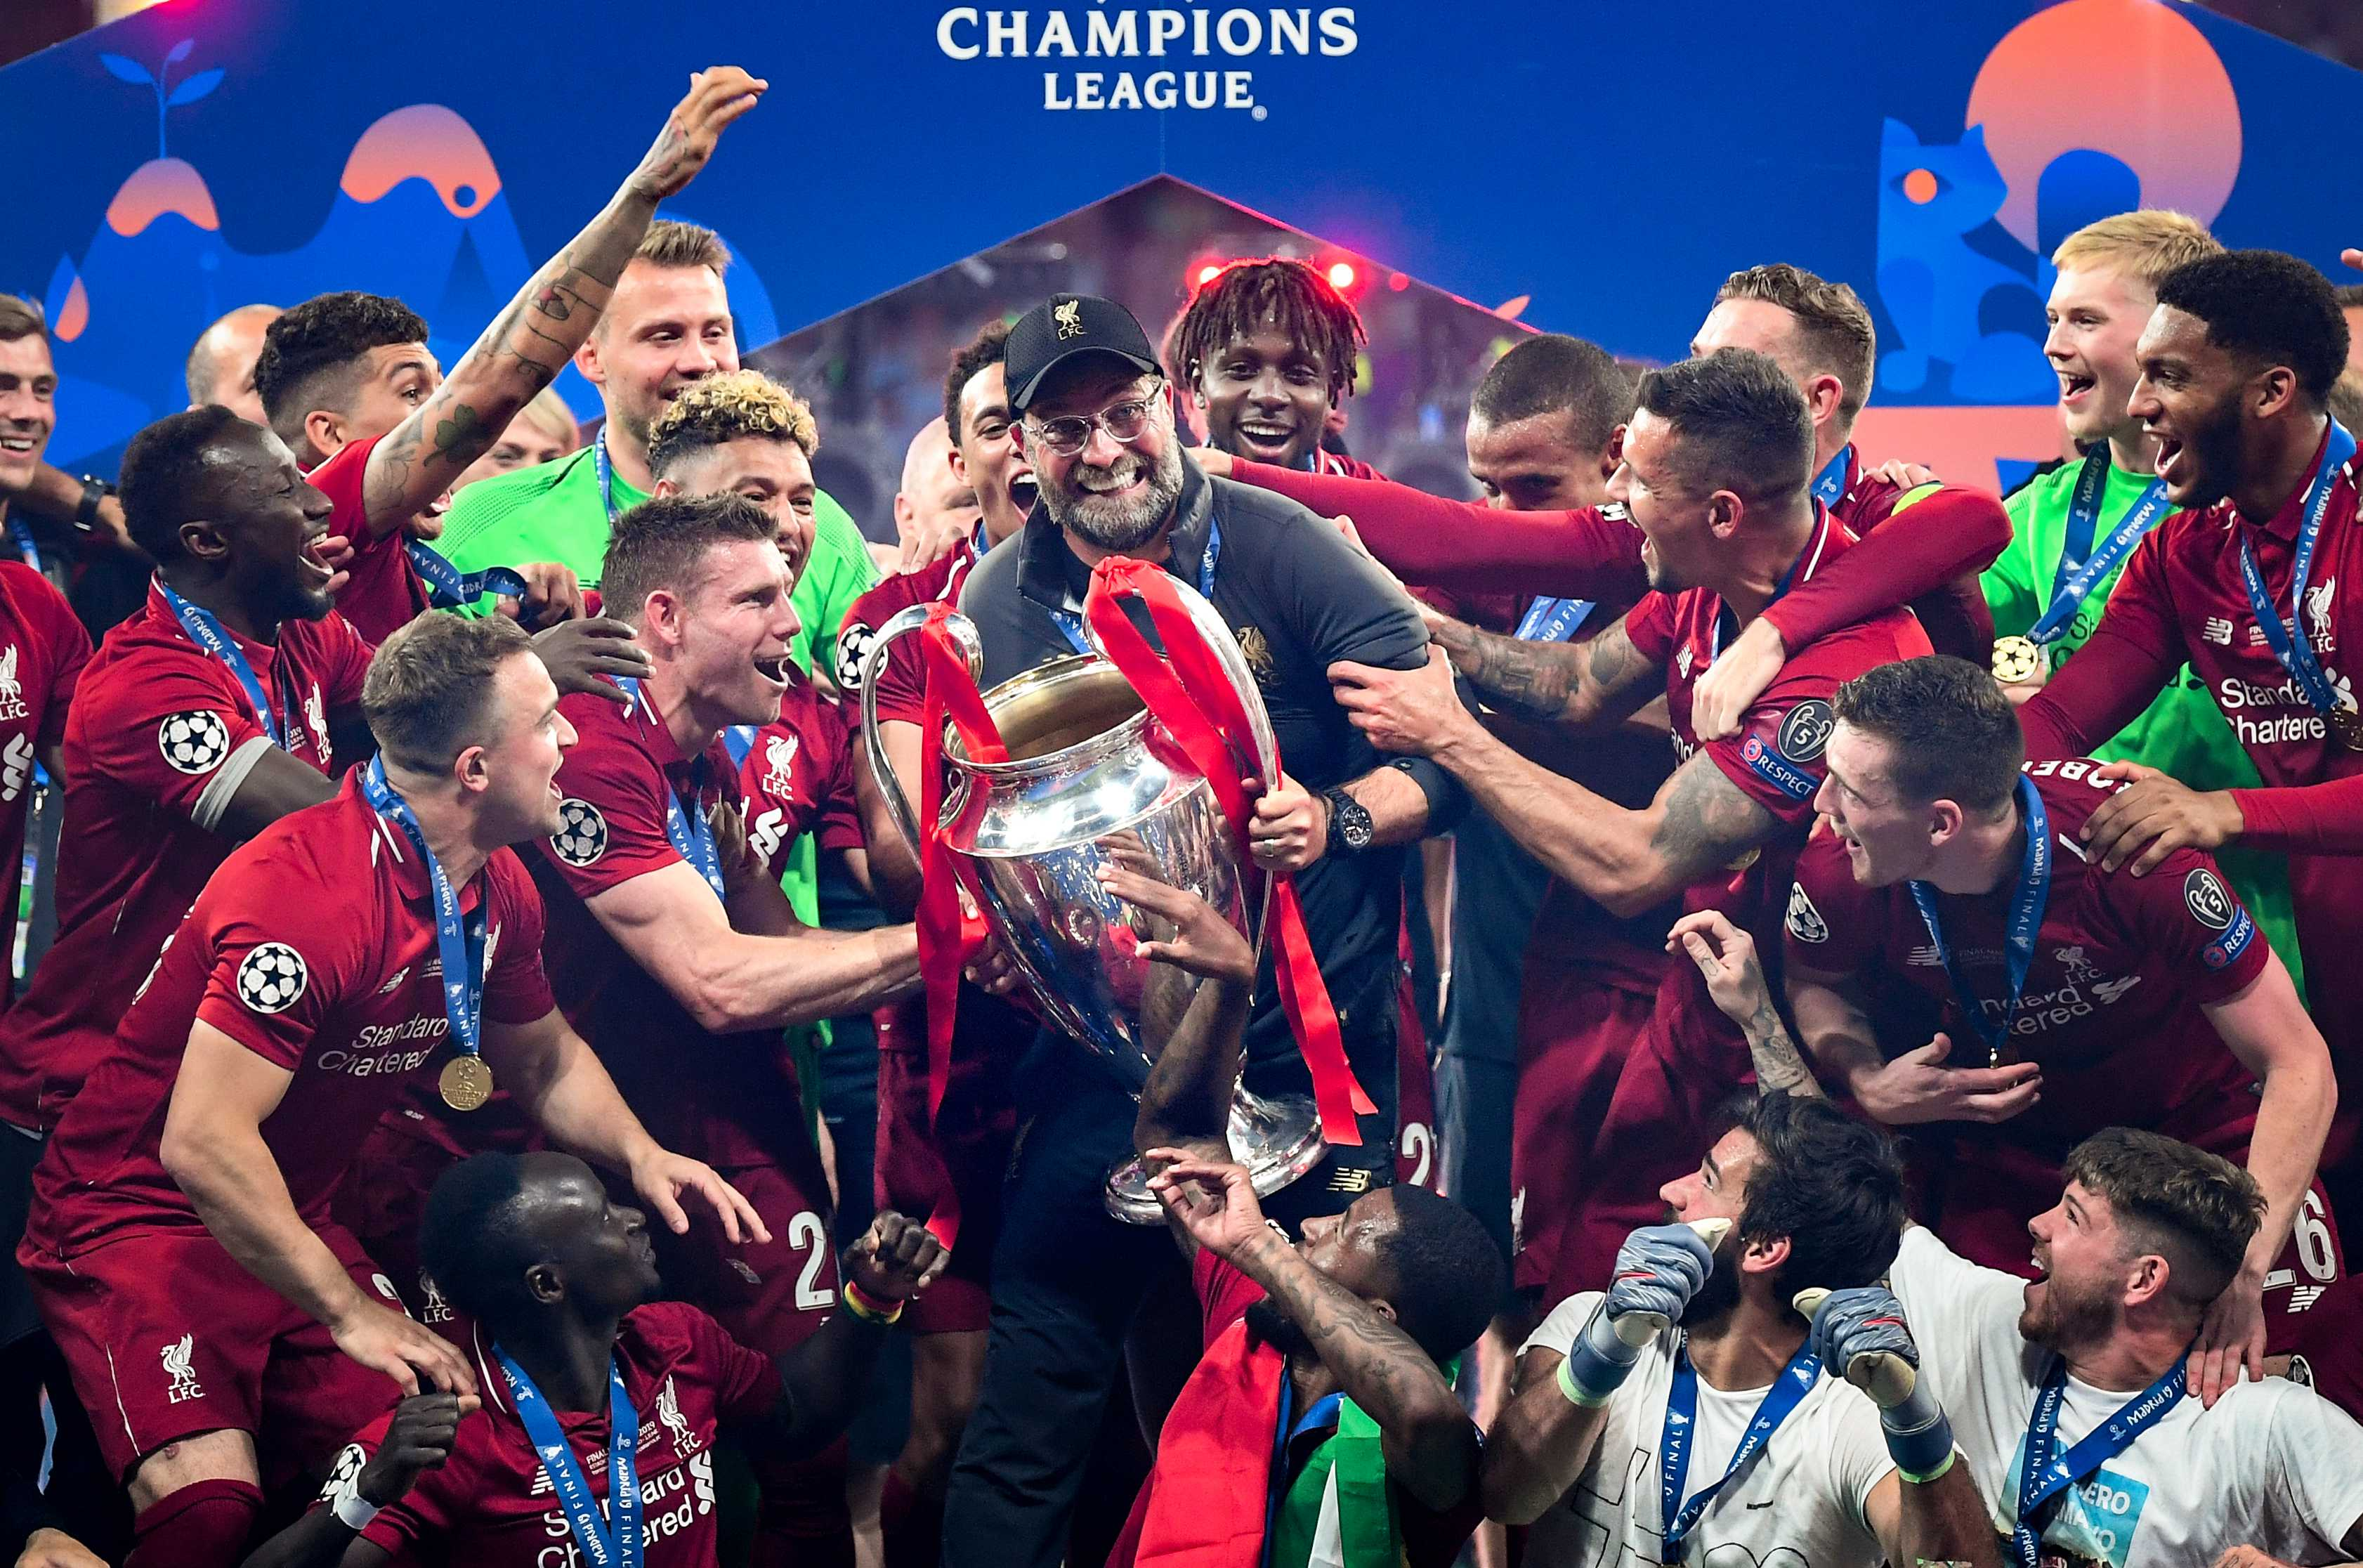 102 Aips Nations Voted Liverpool Fc The Best Team Of 2019 And Iaaf World Championships Doha The Best Press Facility Aips Media